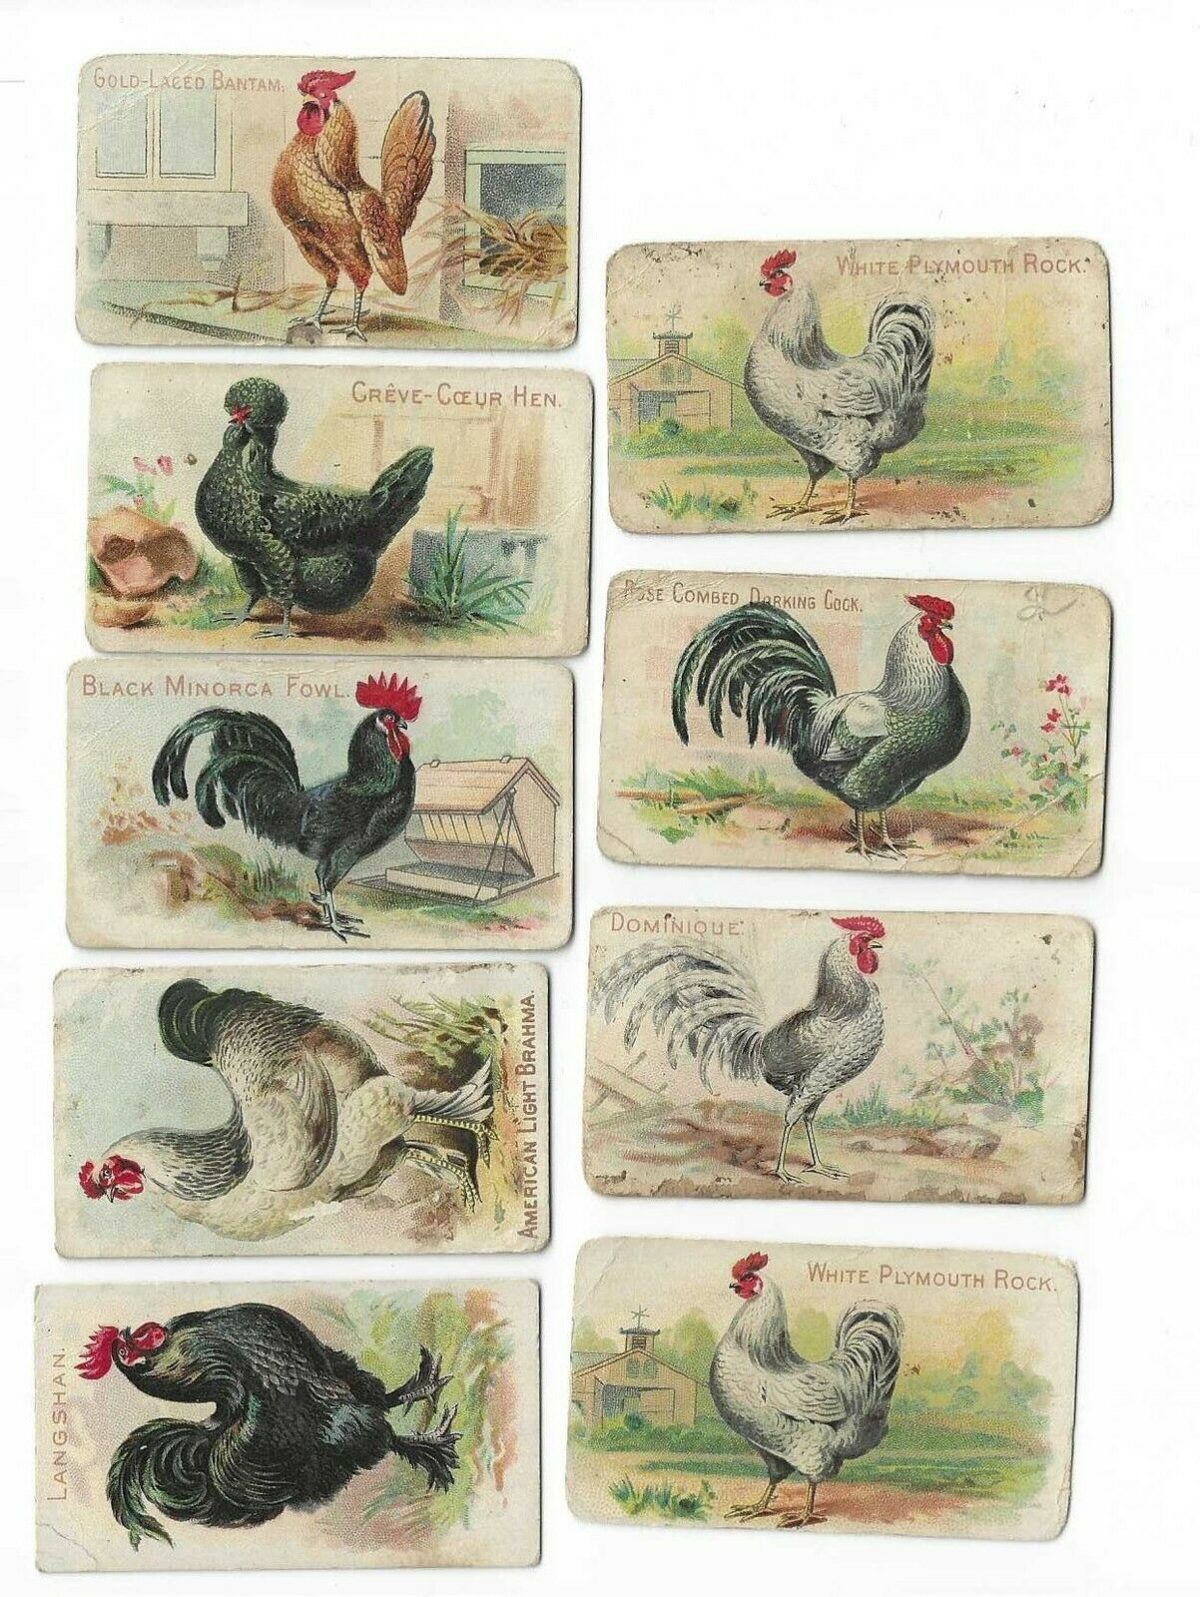 Zoo Cards Chickens 1907 Philadelphia Caramel Co. Lot of 9 Trading Cards E31